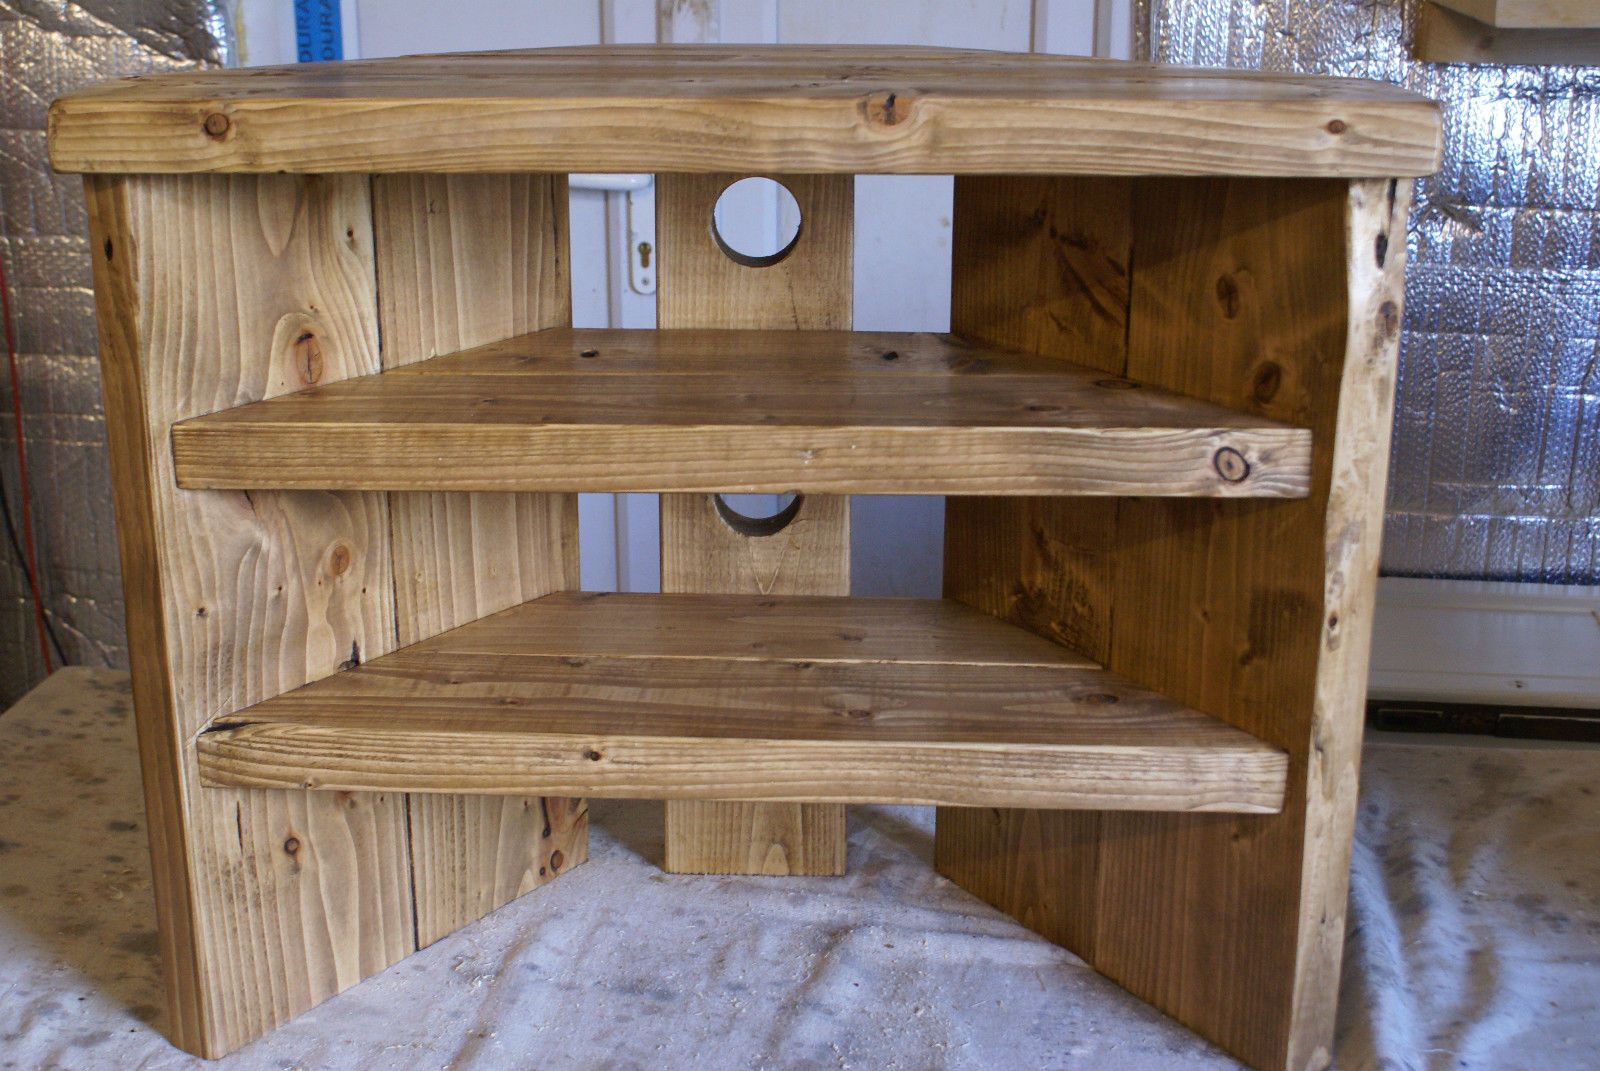 Details About Rustic Corner Tv Stand Solid Wood Unit Cabinet Plank Sleeper Oiled Waxed Corner Tv Stand Rustic Corner Tv Corner Tv Cabinets